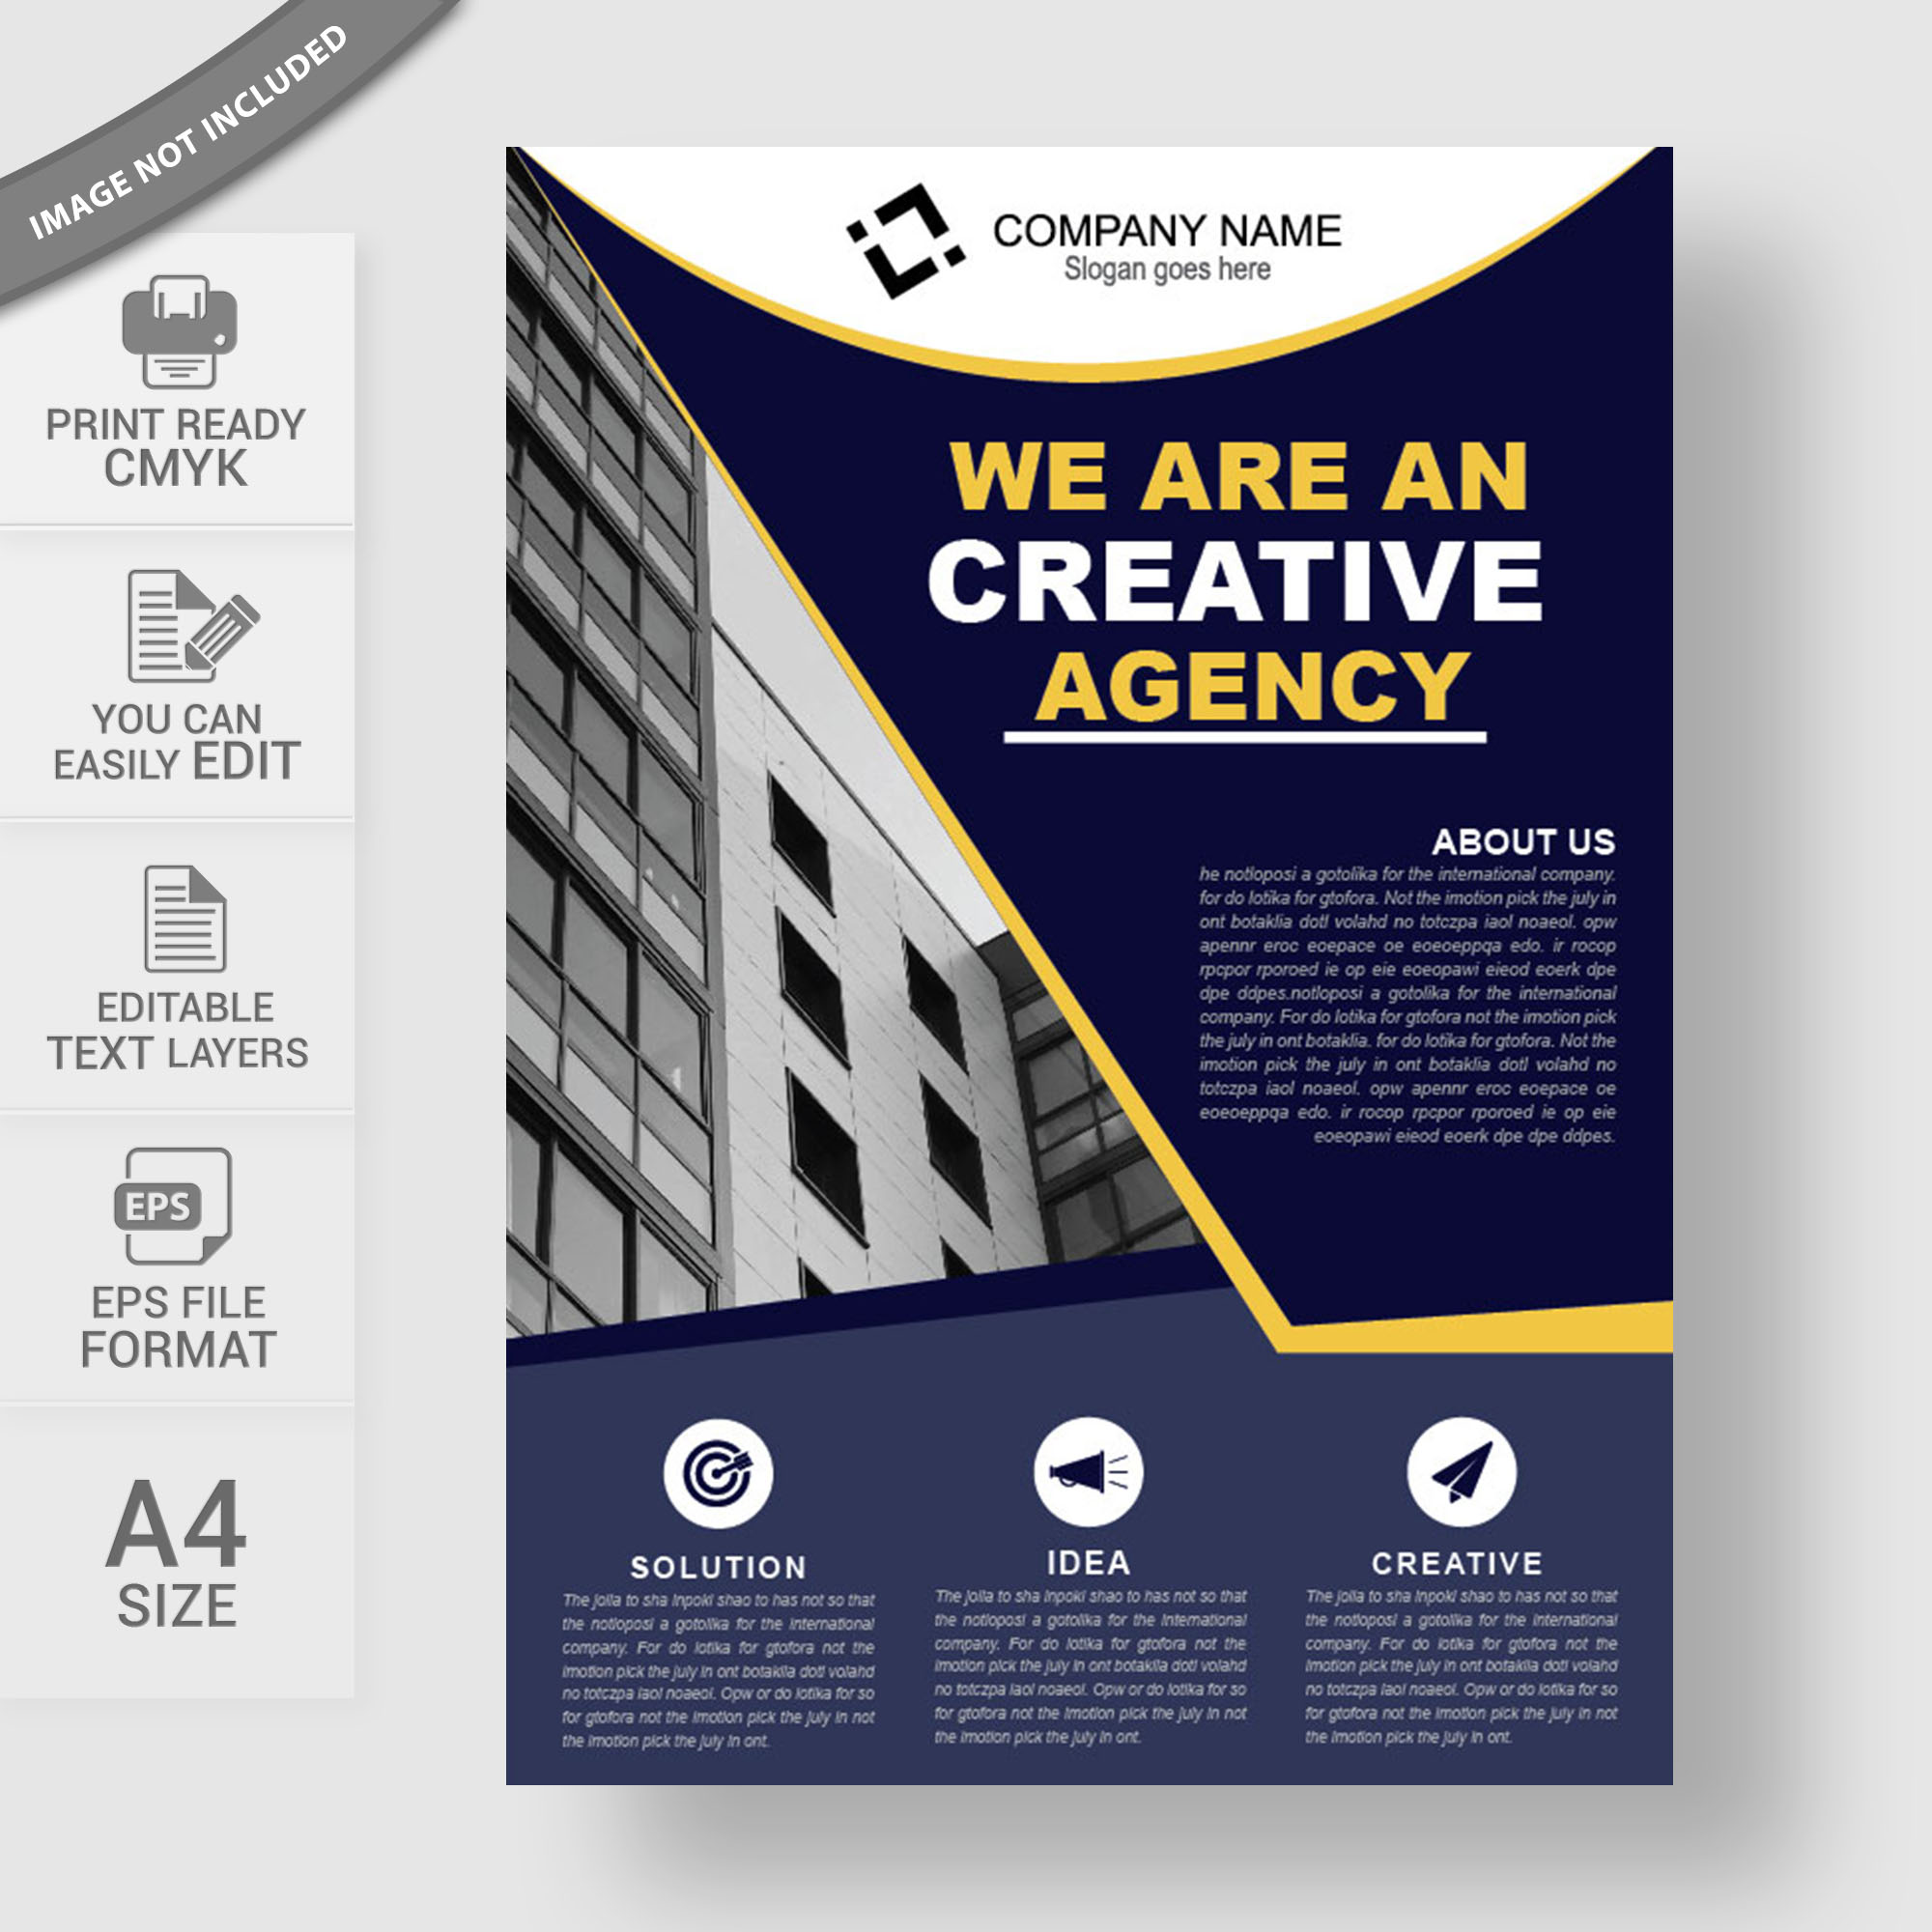 Modern Corporate Flyer Template Free Download Wisxicom - Business advertising flyers templates free